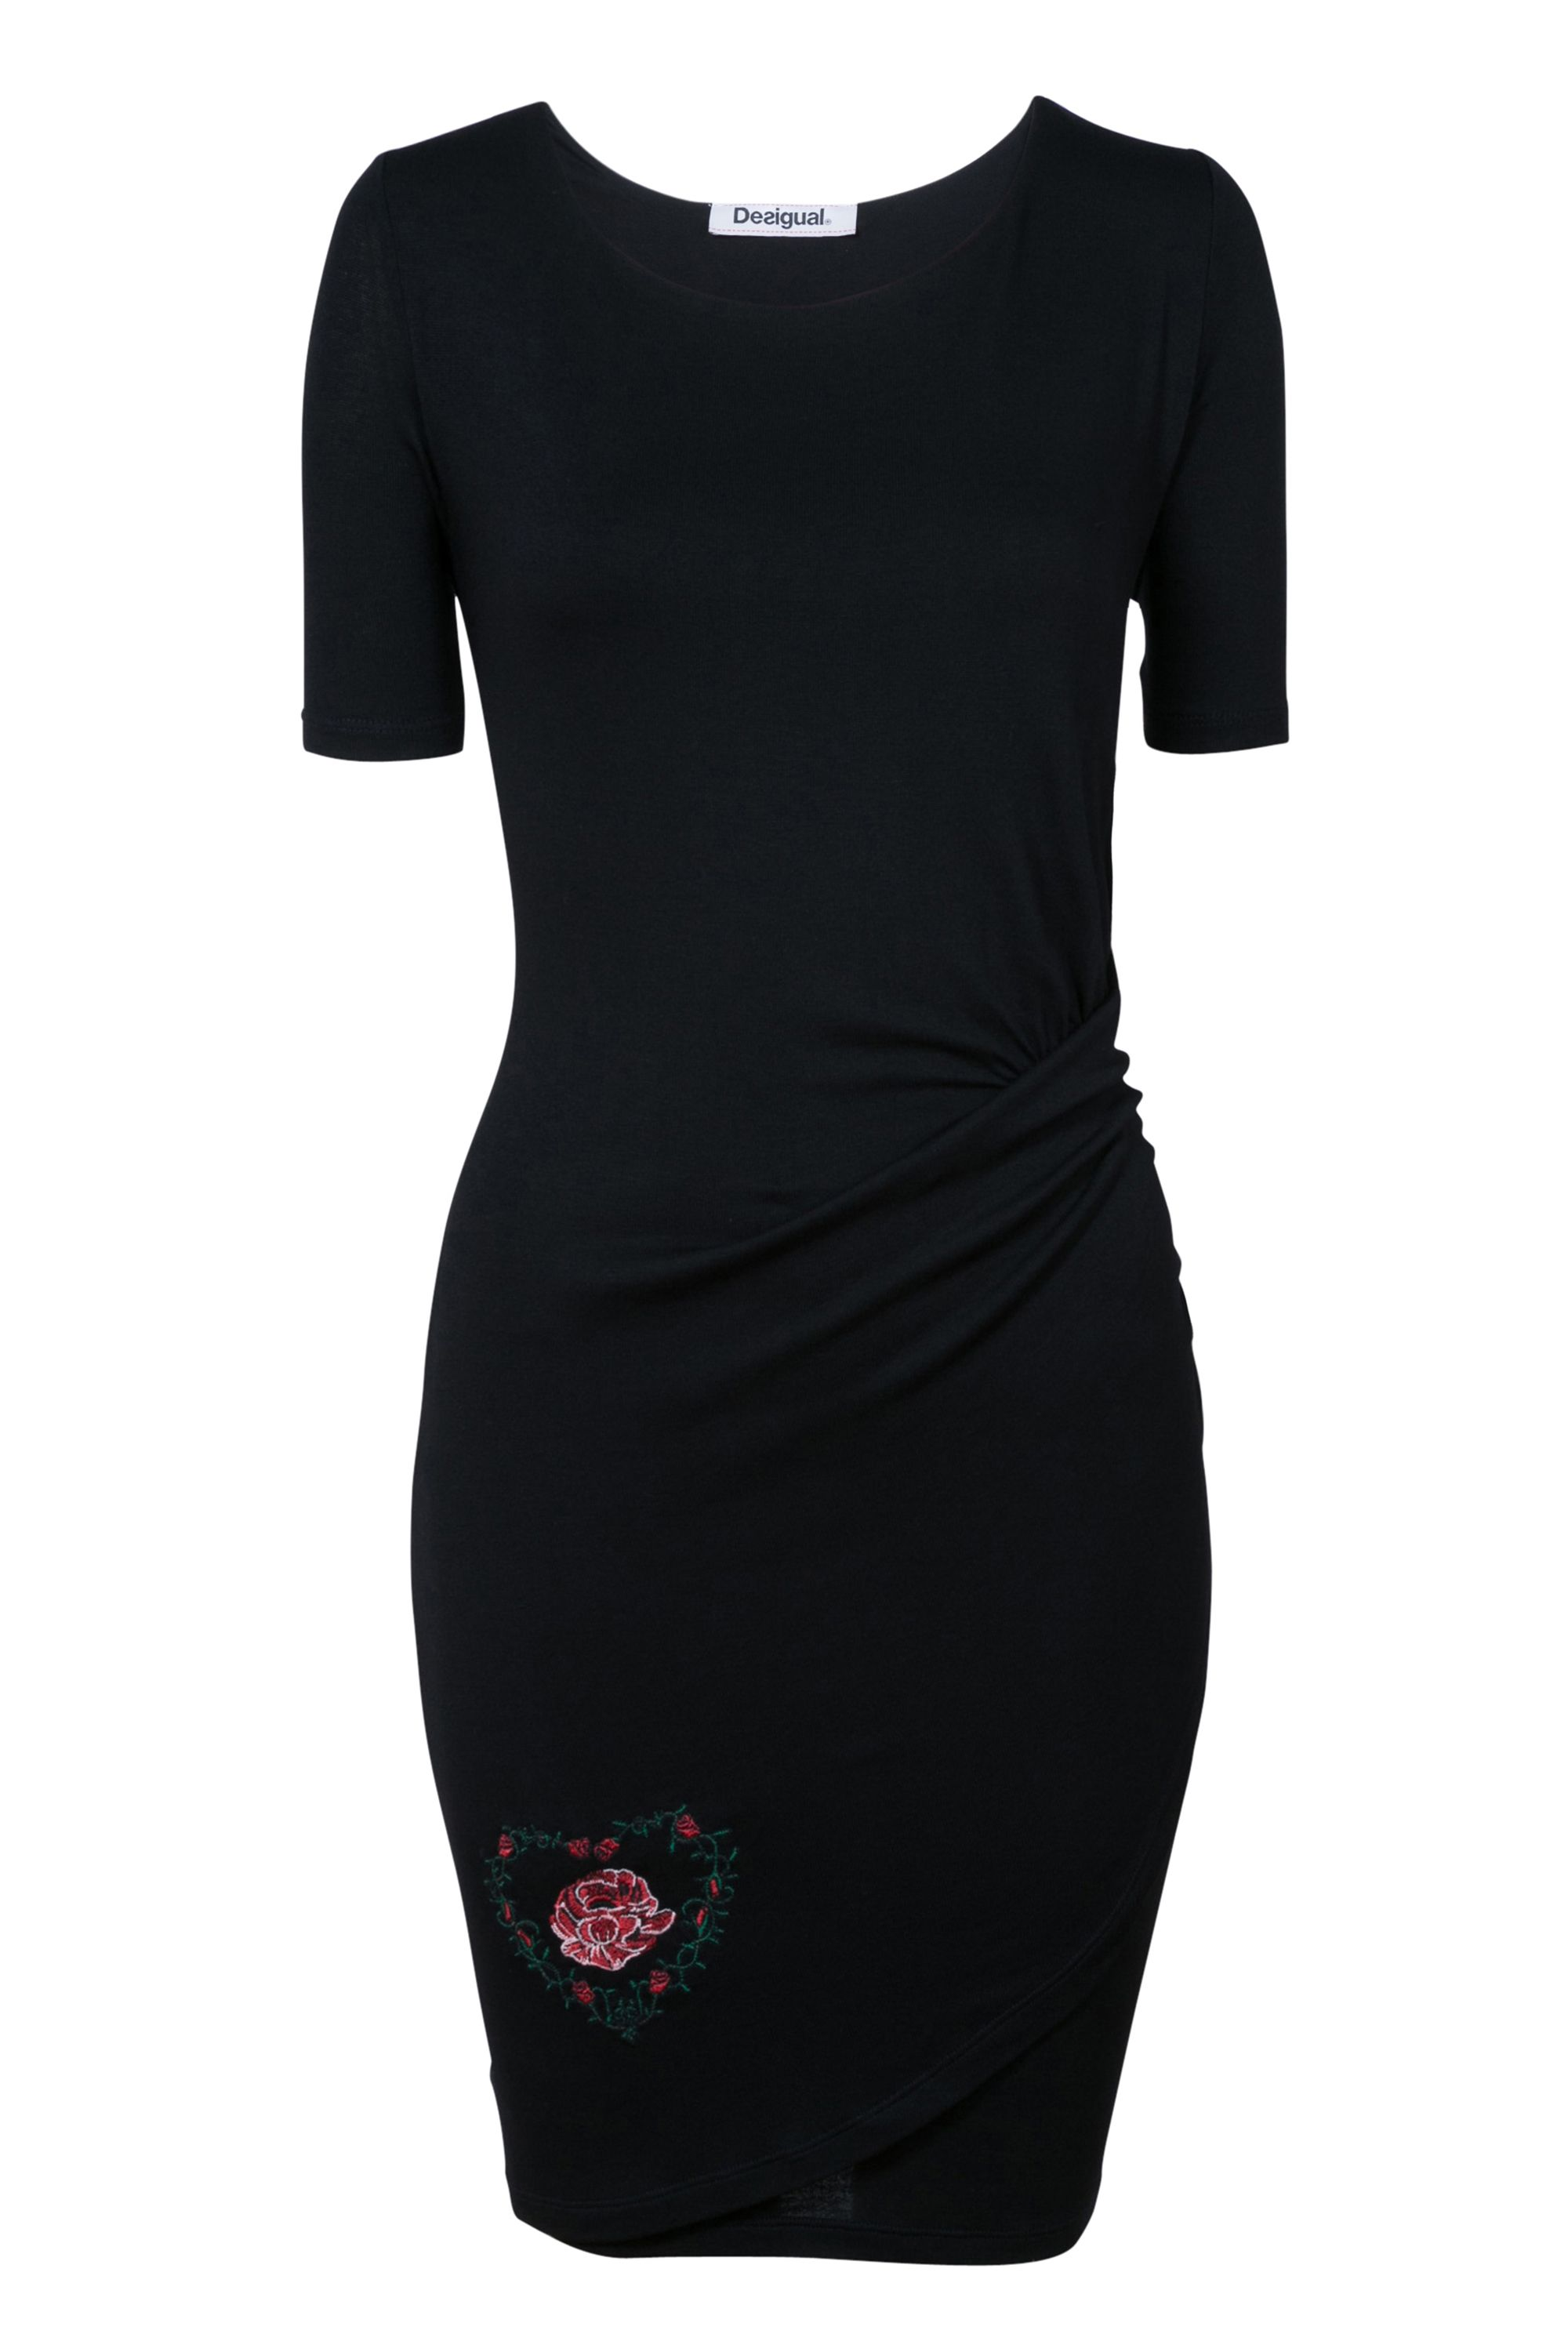 Desigual Dress Madrid, Black